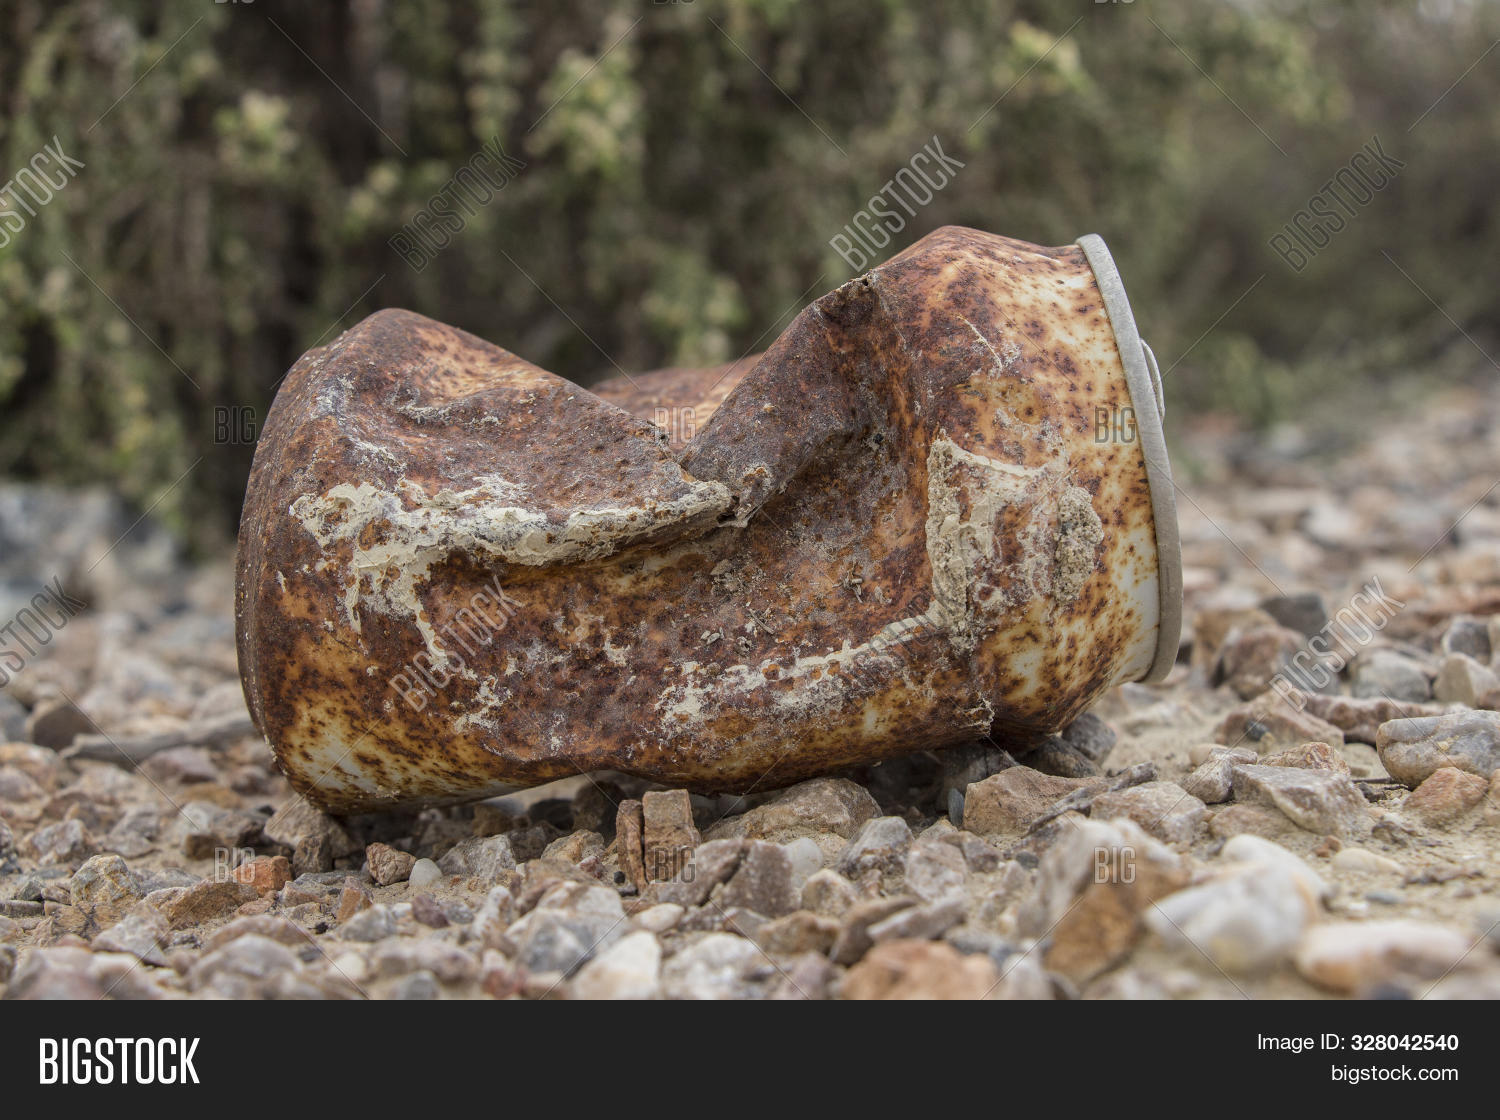 rusty can, rusty beer can lying in the field, rusty can, old rusty can outdoor,trash